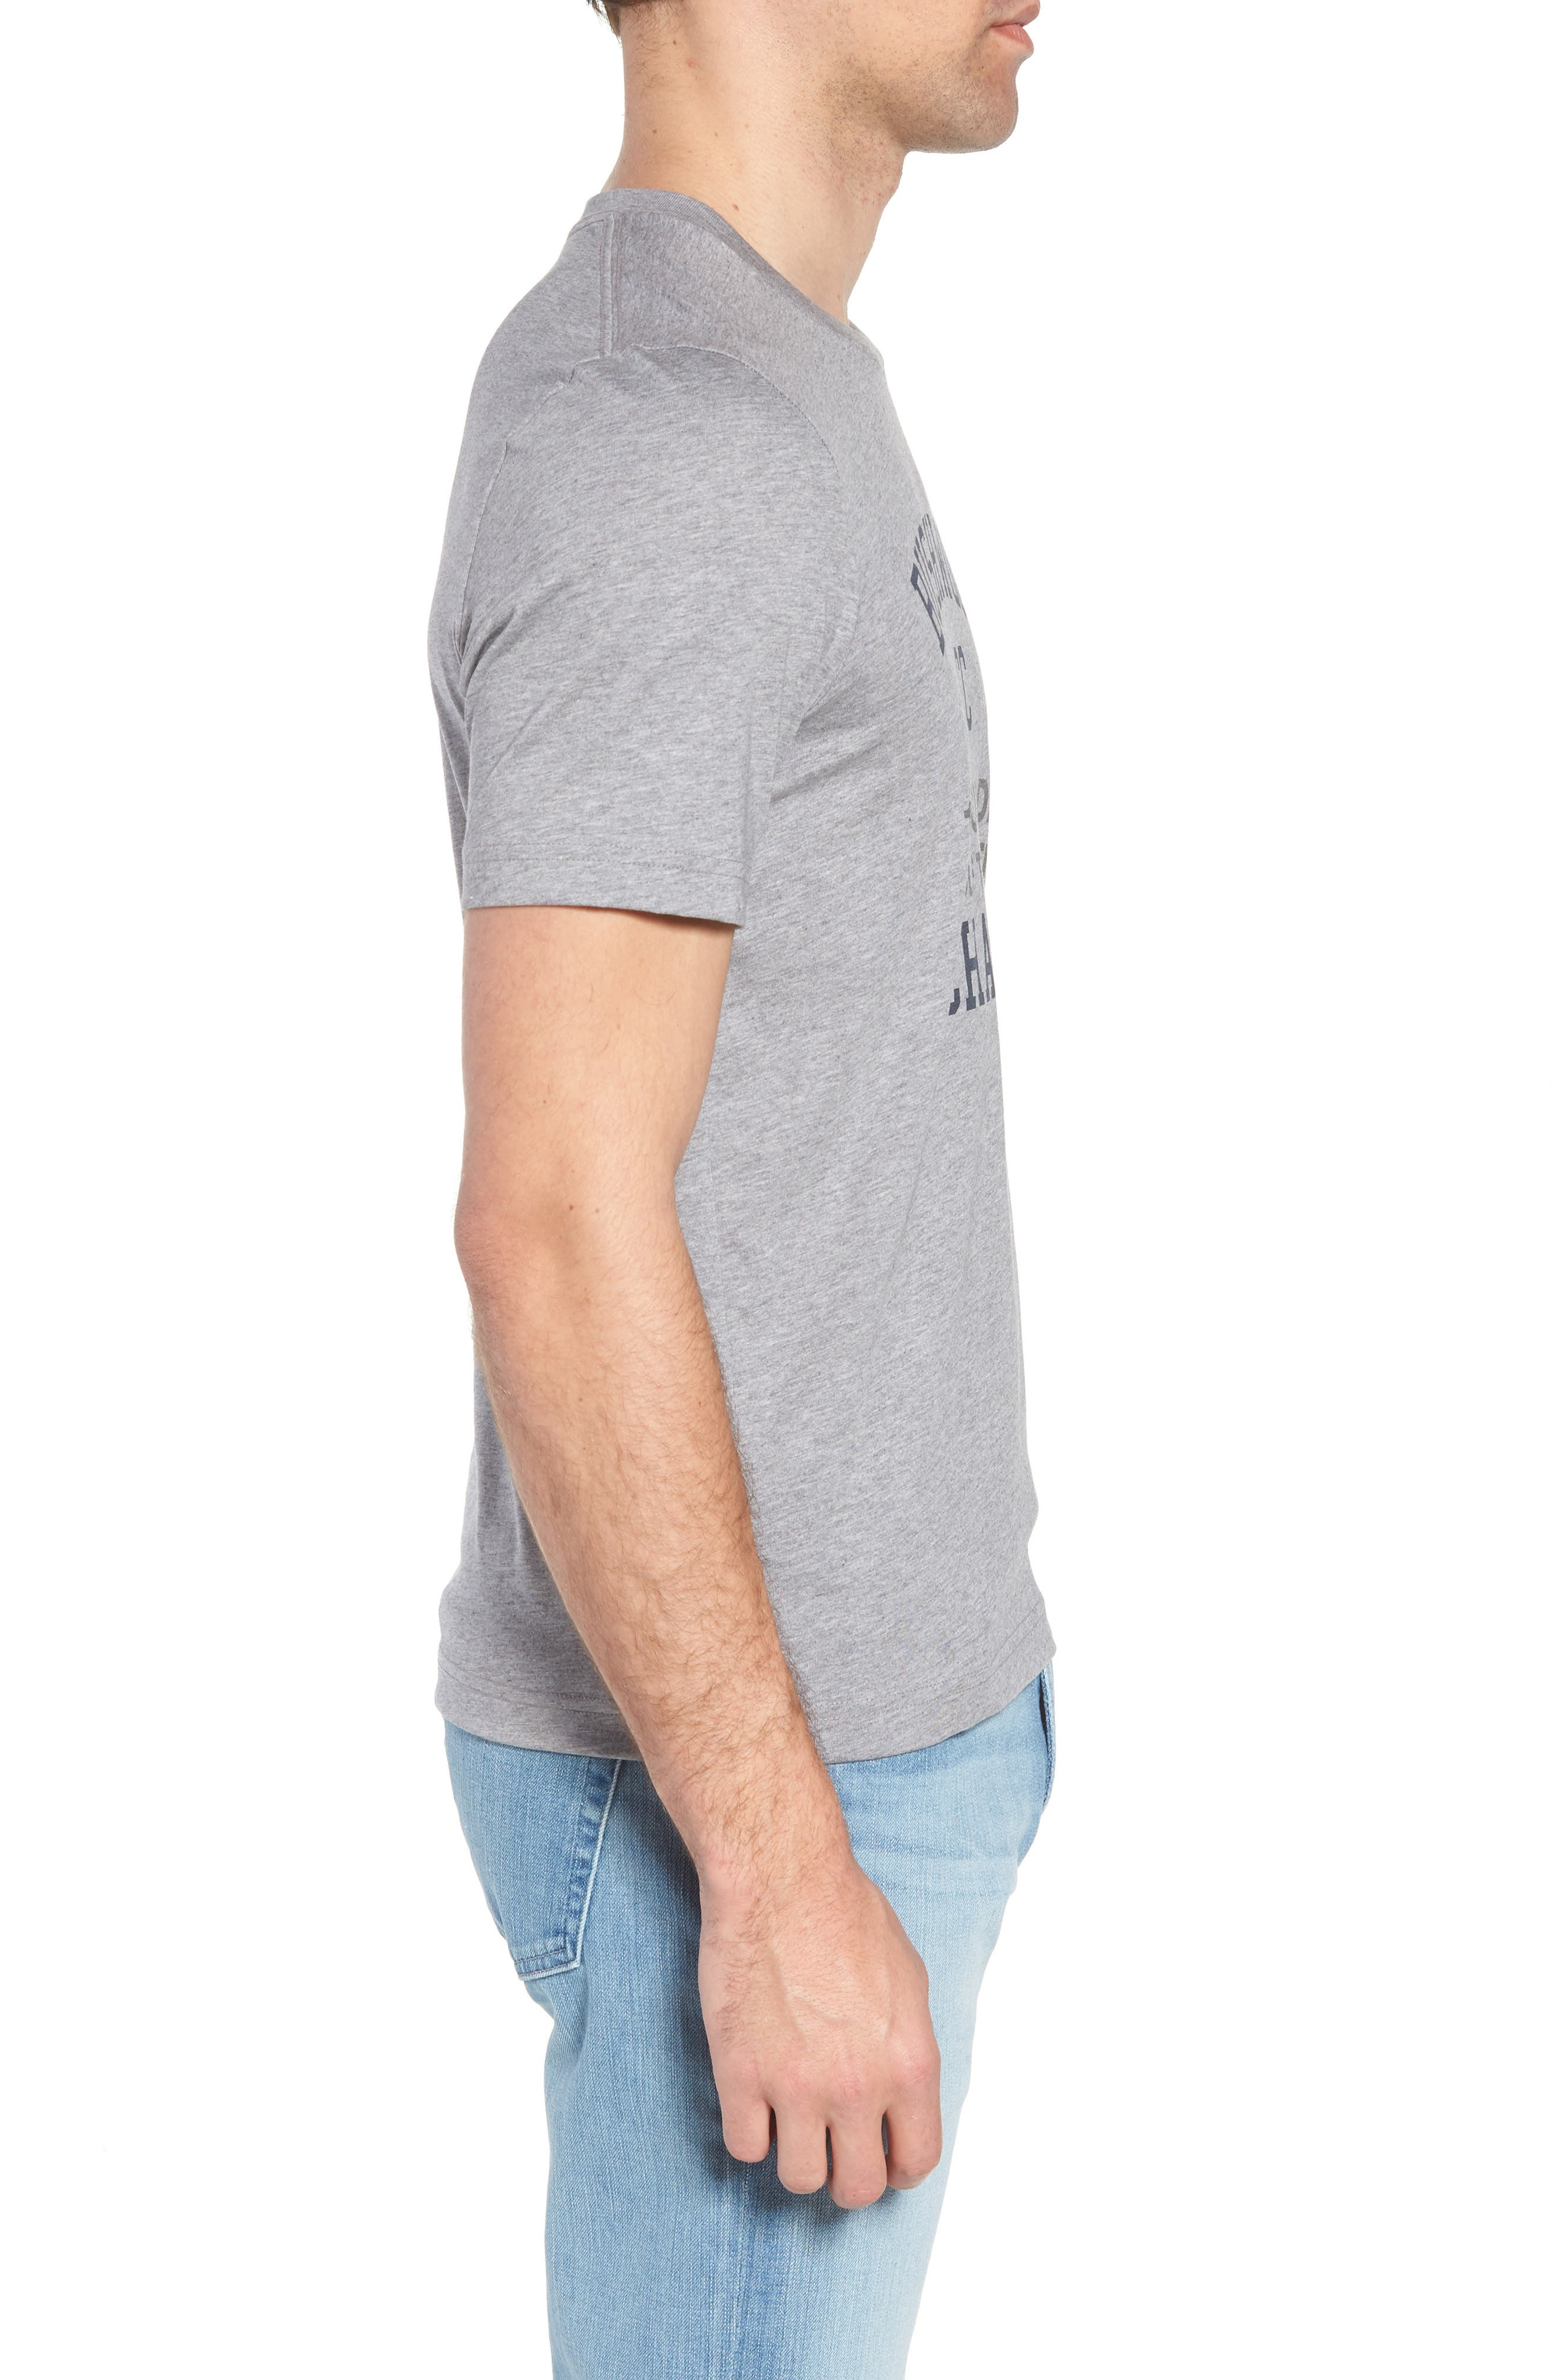 Caddy Day Graphic T-Shirt,                             Alternate thumbnail 3, color,                             Heather Grey